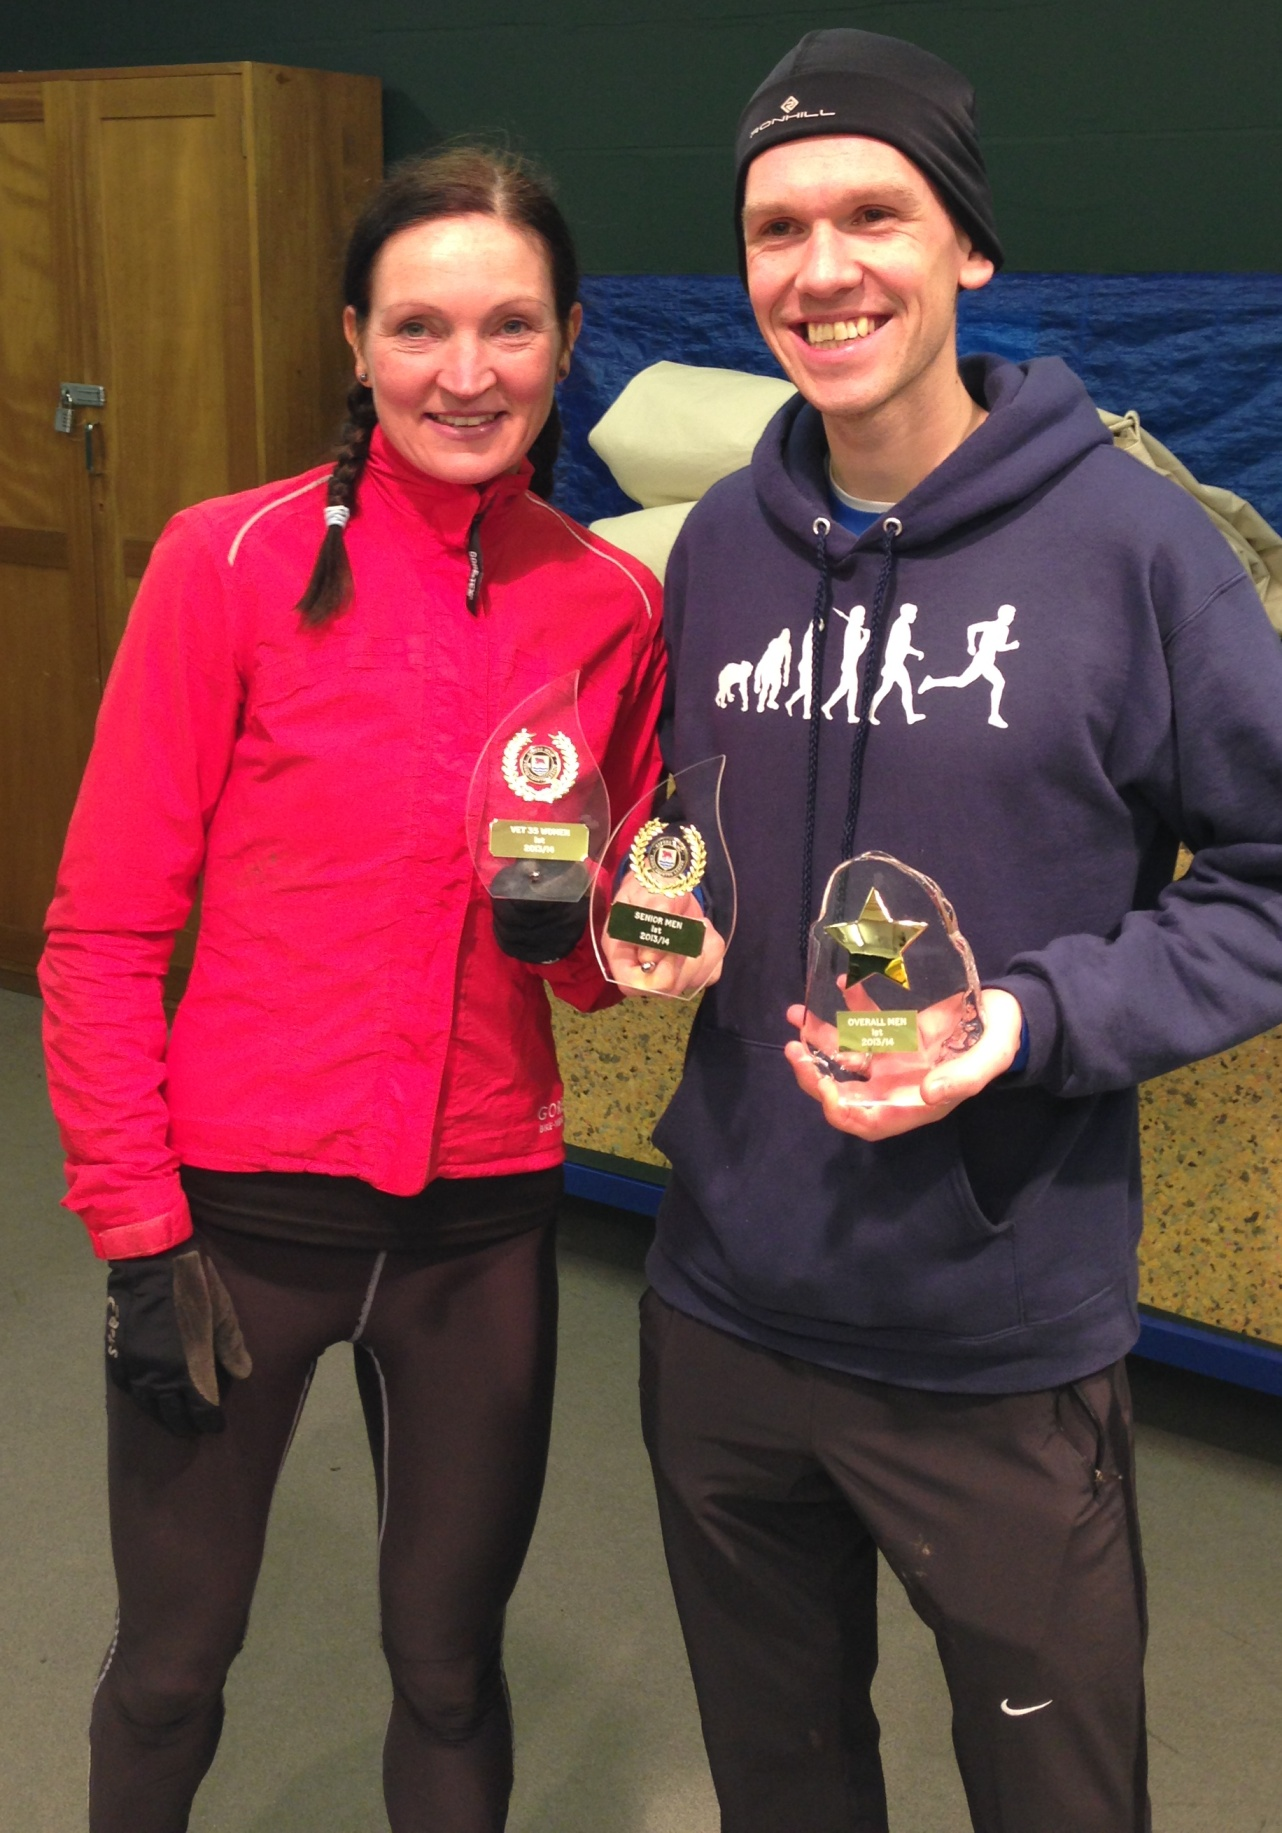 Wendy Nicholls and Dave Bell of Cirencester Athletics Club who both performed well in their races last week